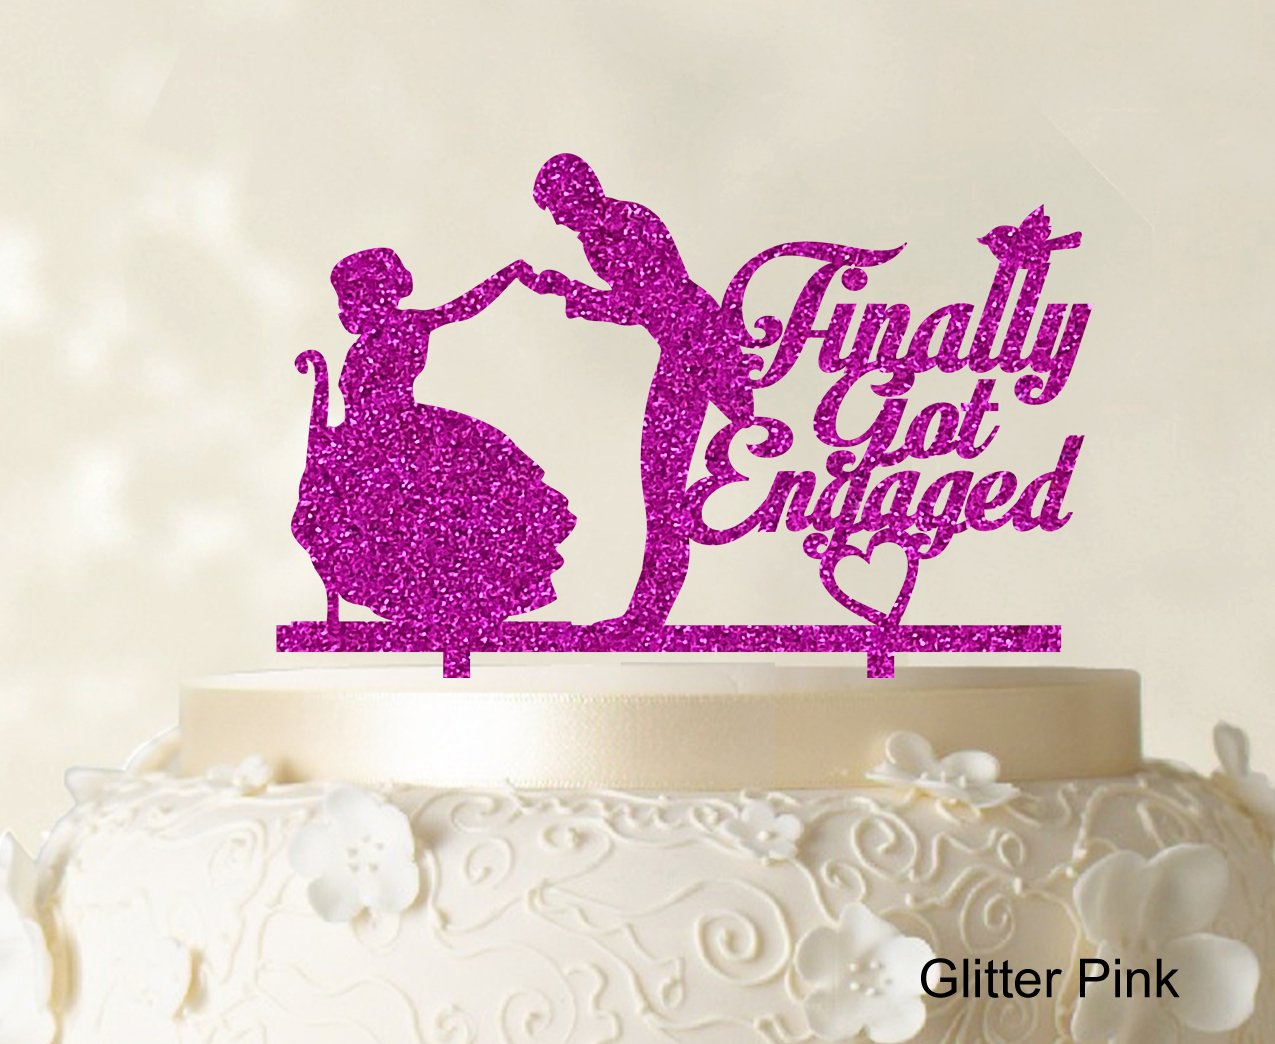 Finally Got Engaged Couple Cake Topper Wedding Cake Topper Color ...